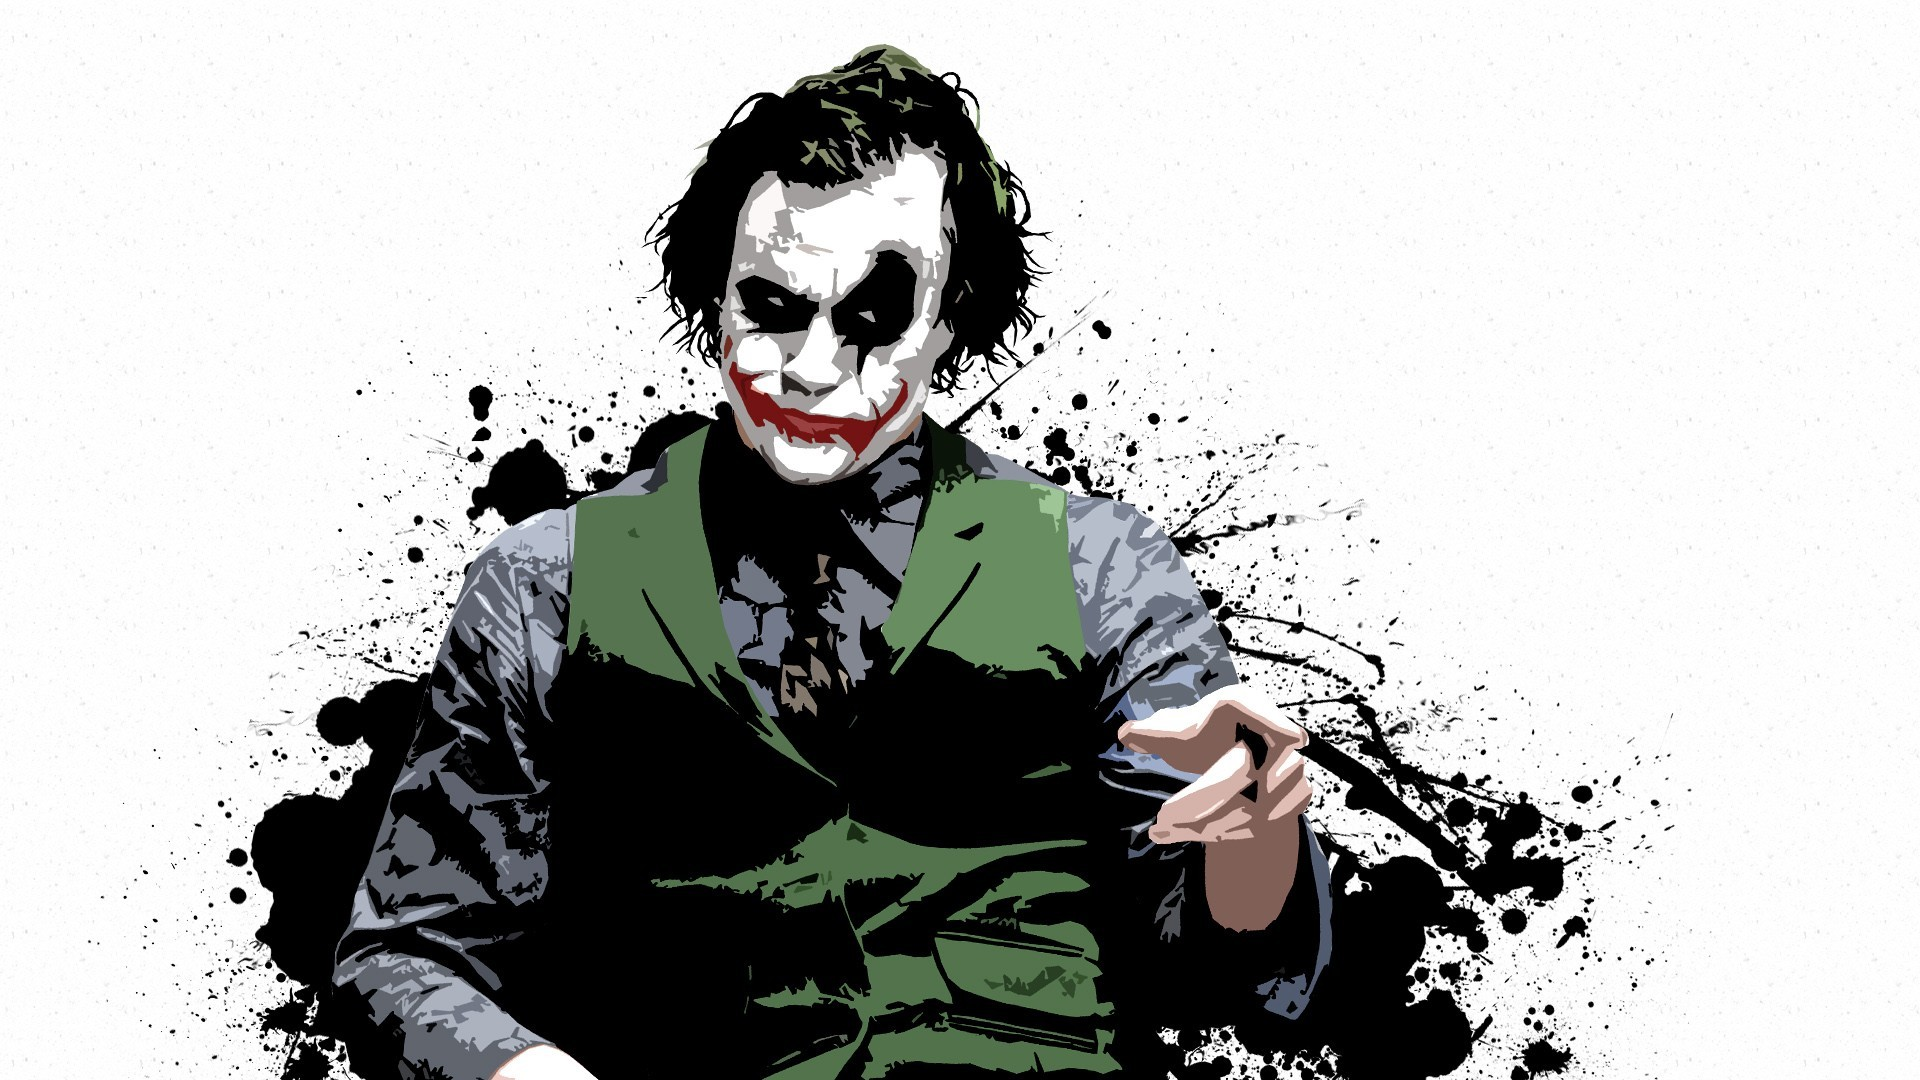 Joker Wallpaper Dark Knight Hd The joker the 1920x1080